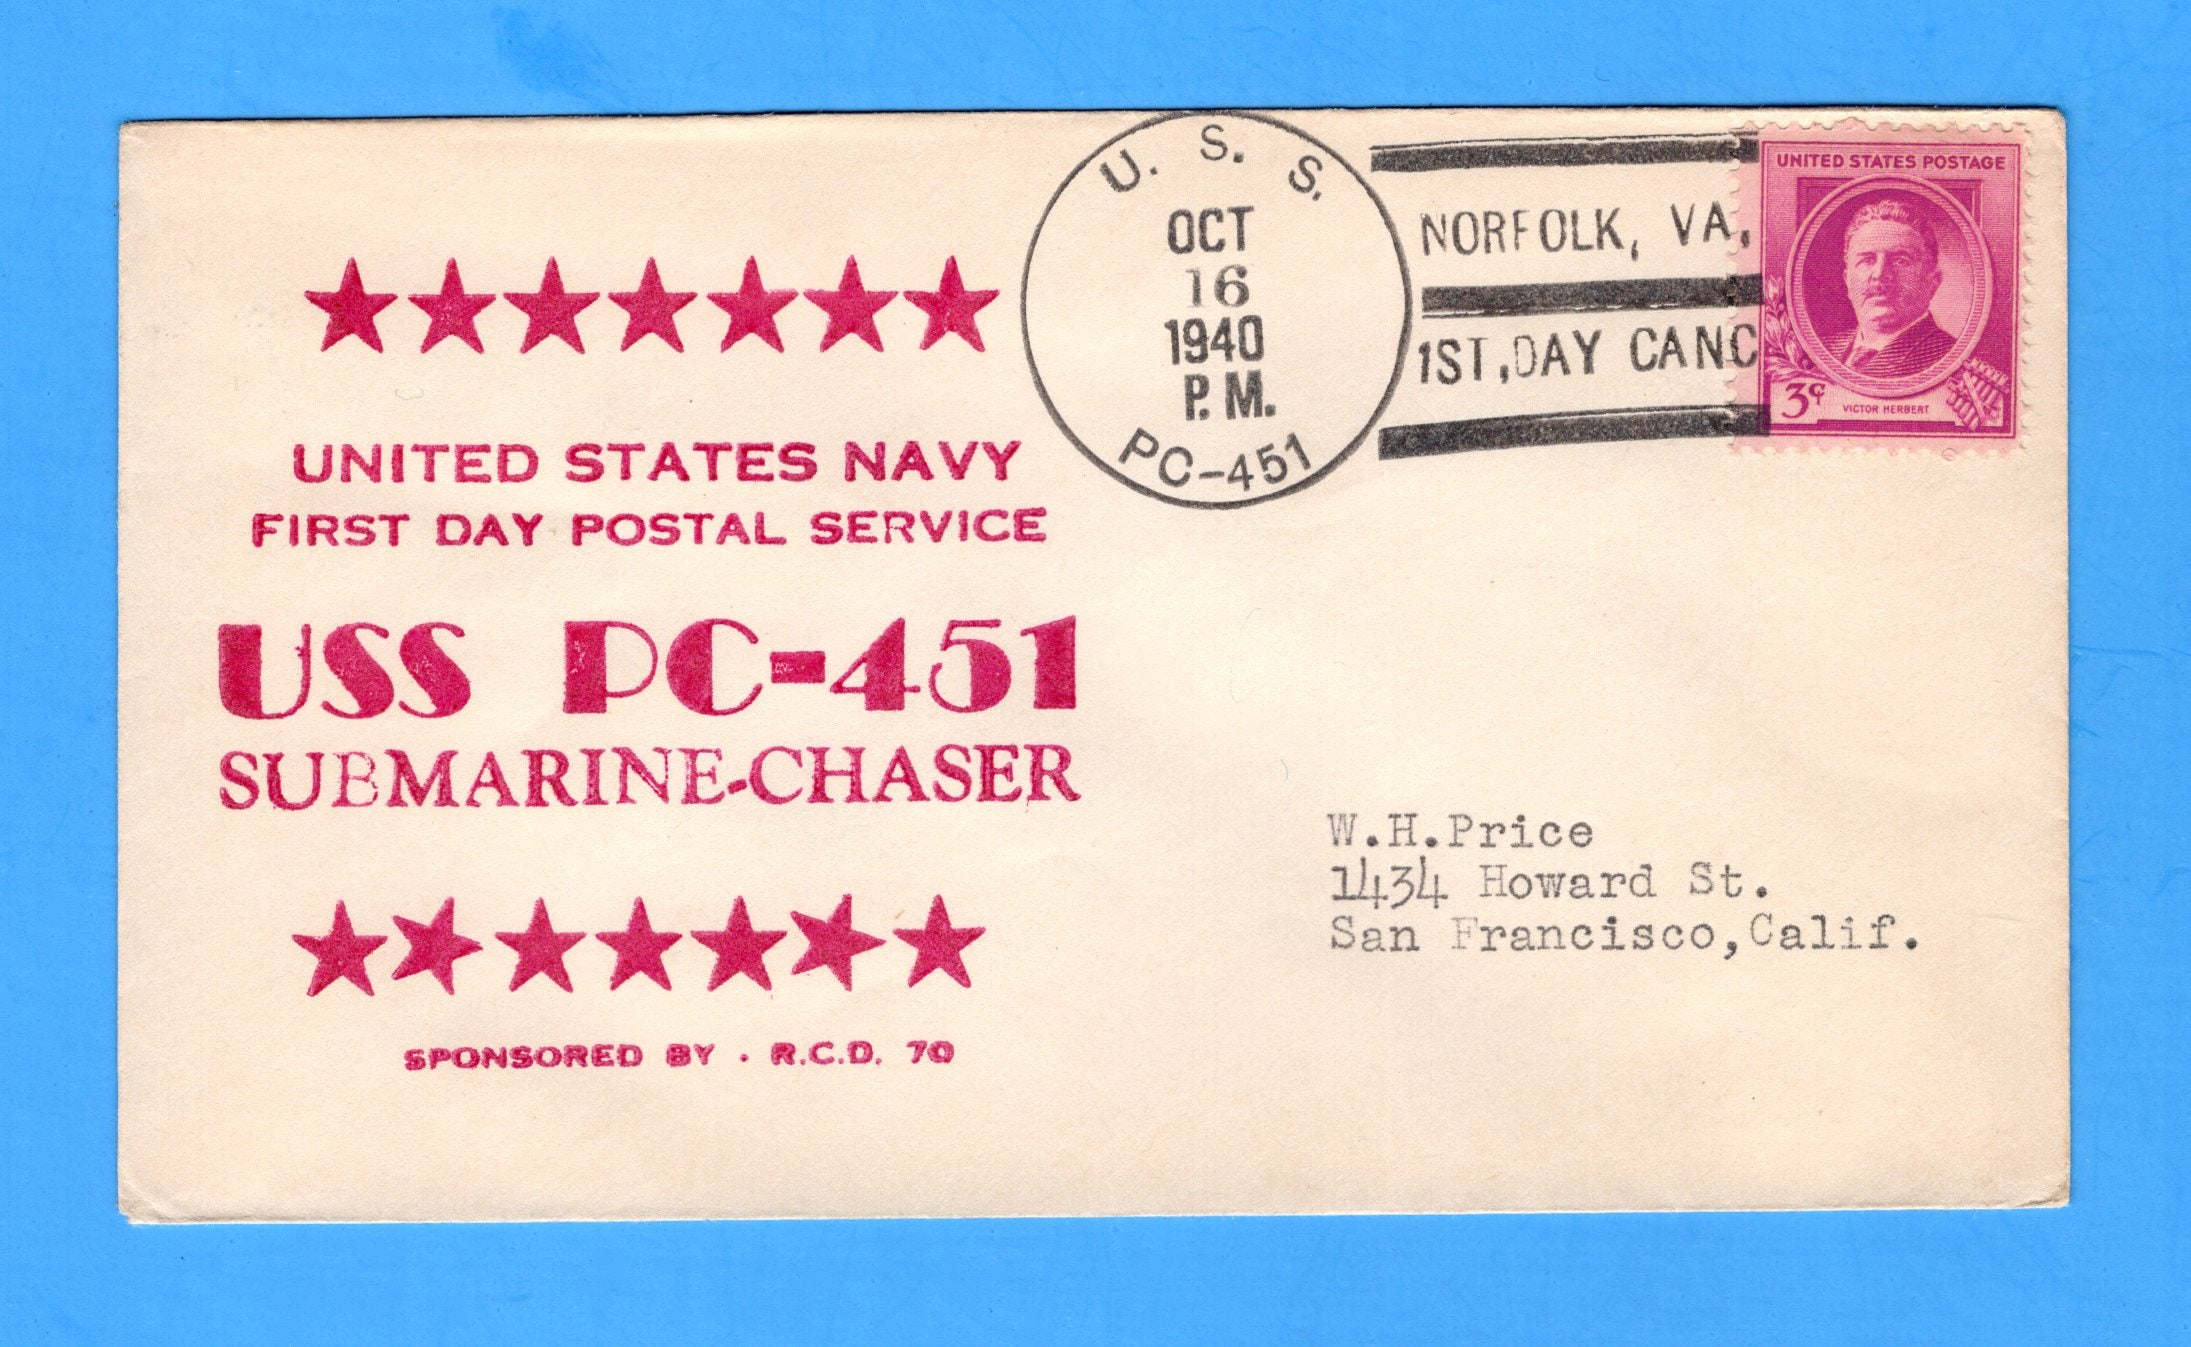 Submarine Chaser USS PC-451 First Day Postal Service October 16, 1940